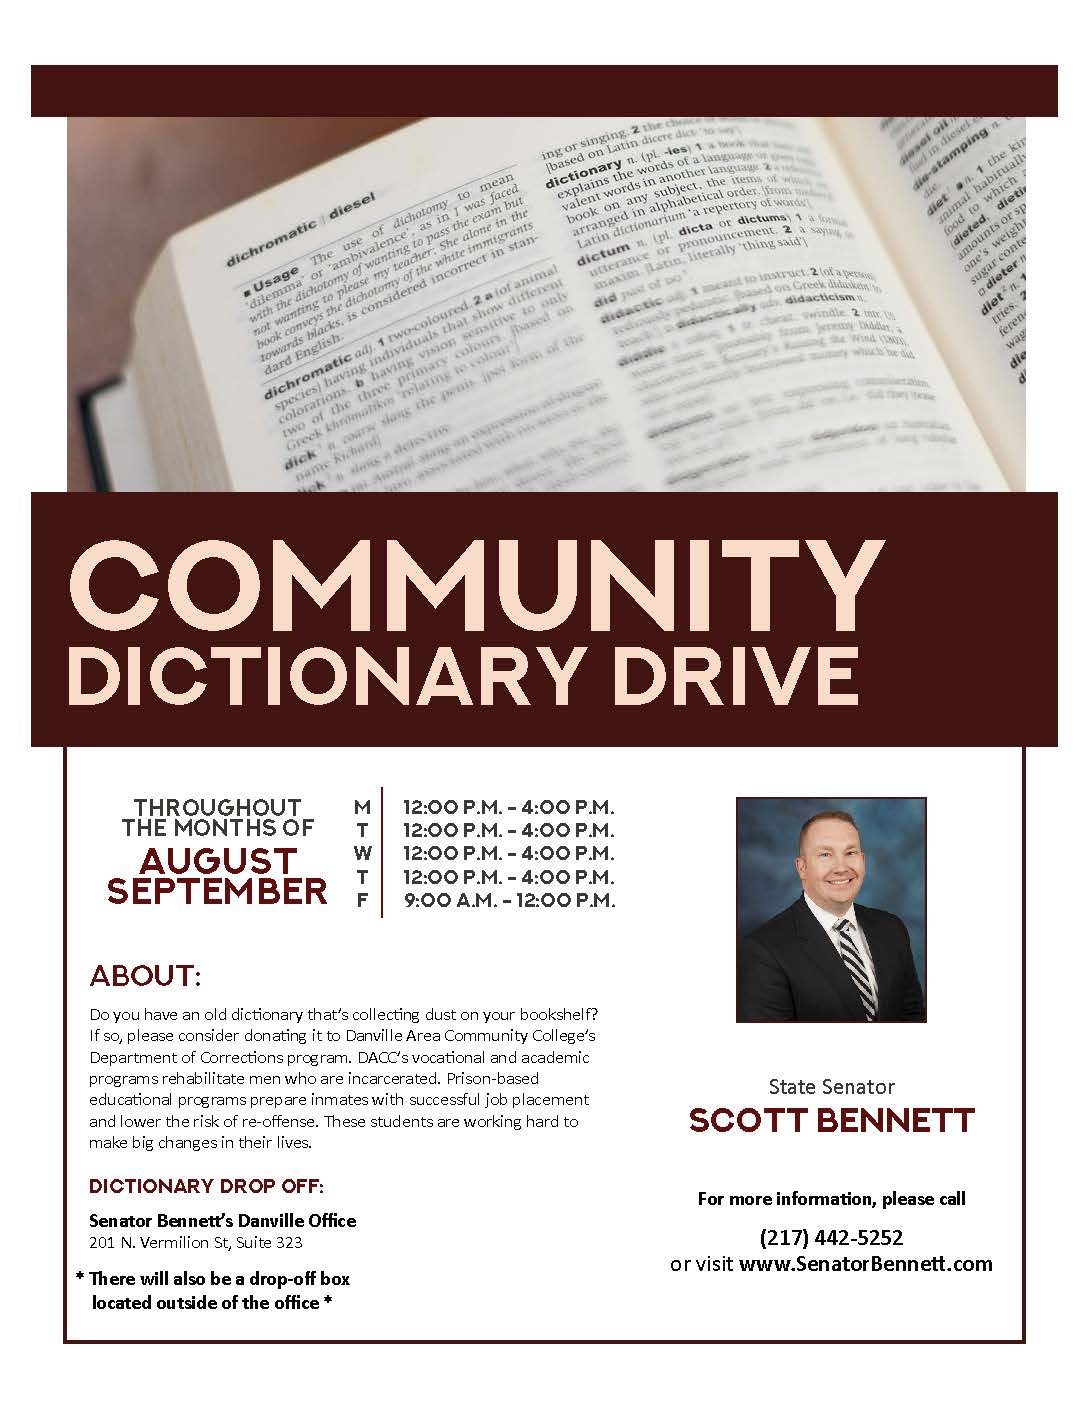 Dictionary Drive Updated Flyer